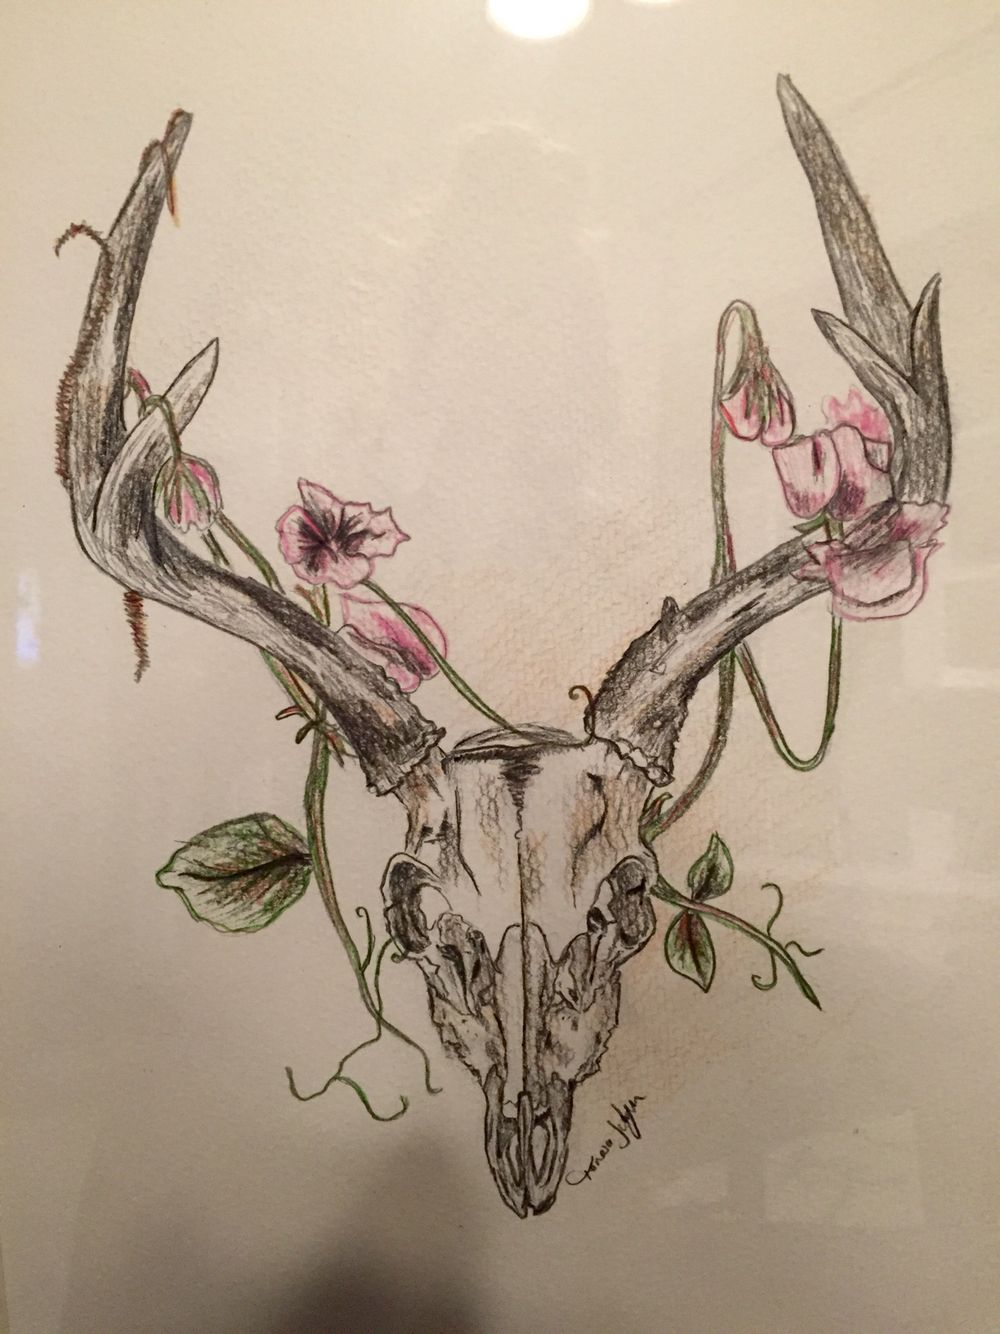 deer skull drawing my homemade projects pinterest skull drawings deer and skulls. Black Bedroom Furniture Sets. Home Design Ideas